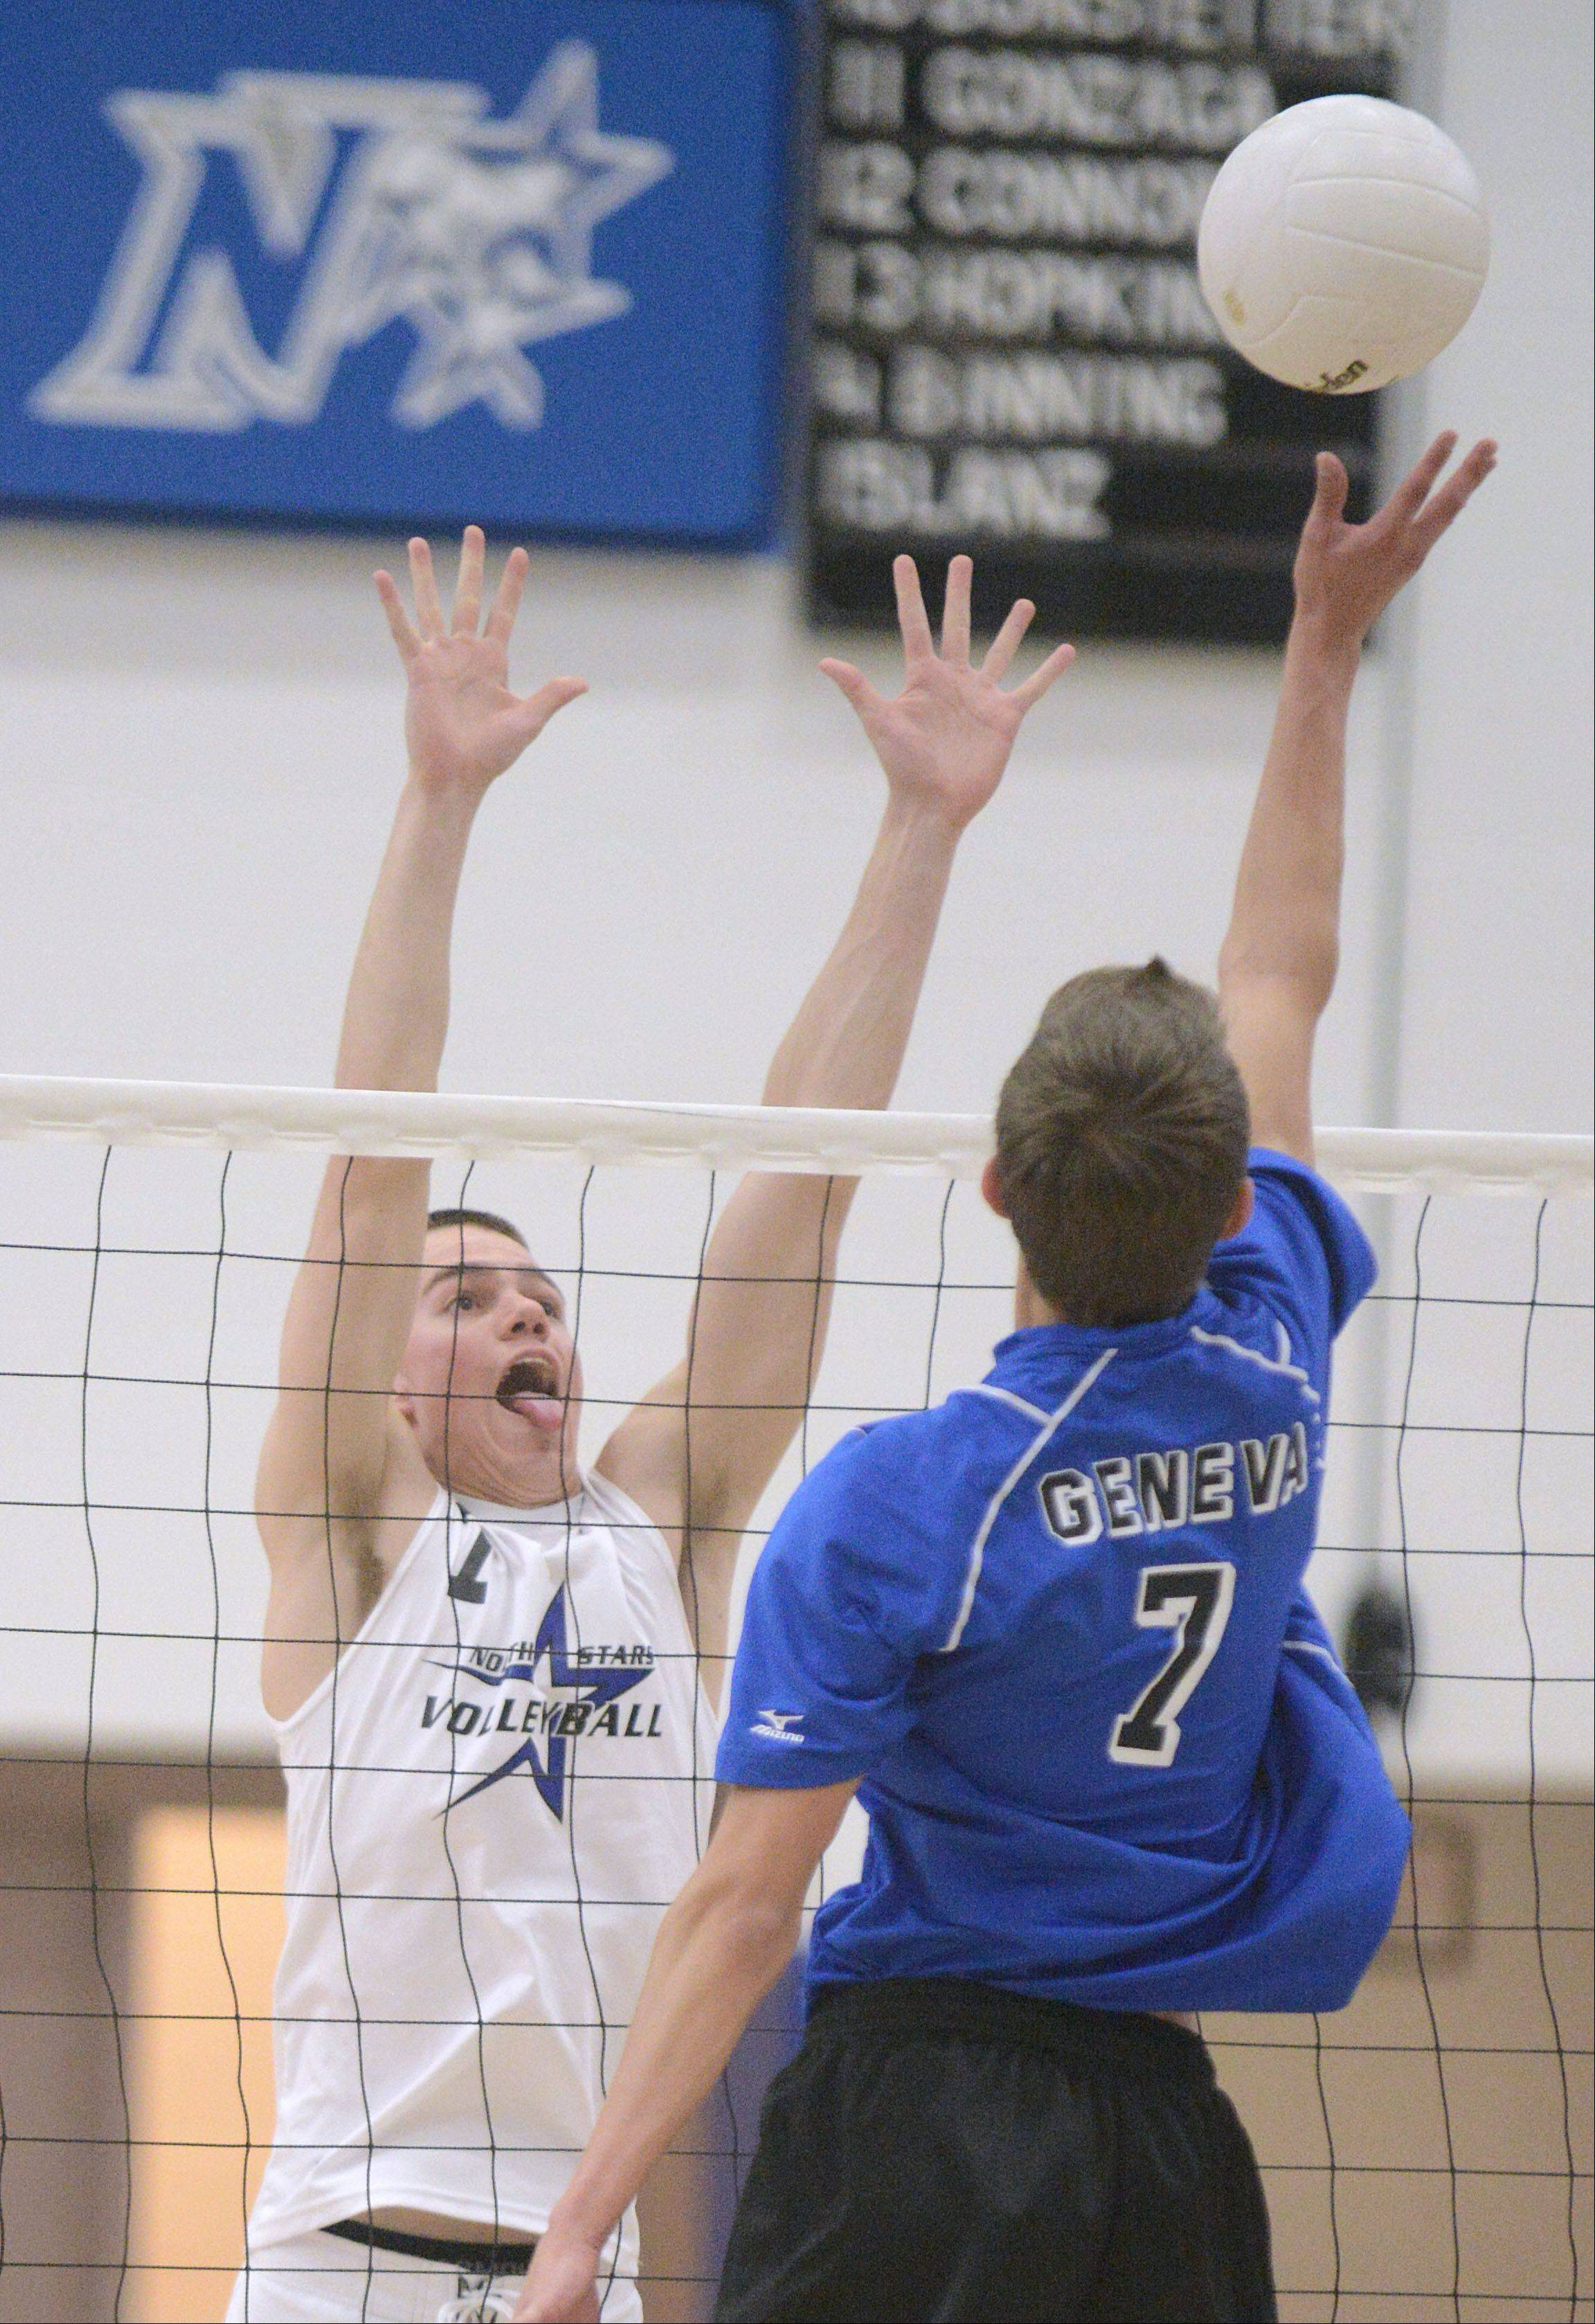 St. Charles North's Zach Ziesmer preps for a tip of the ball over the net from Geneva's Dominic Bondi in the second match on Tuesday, May 7.